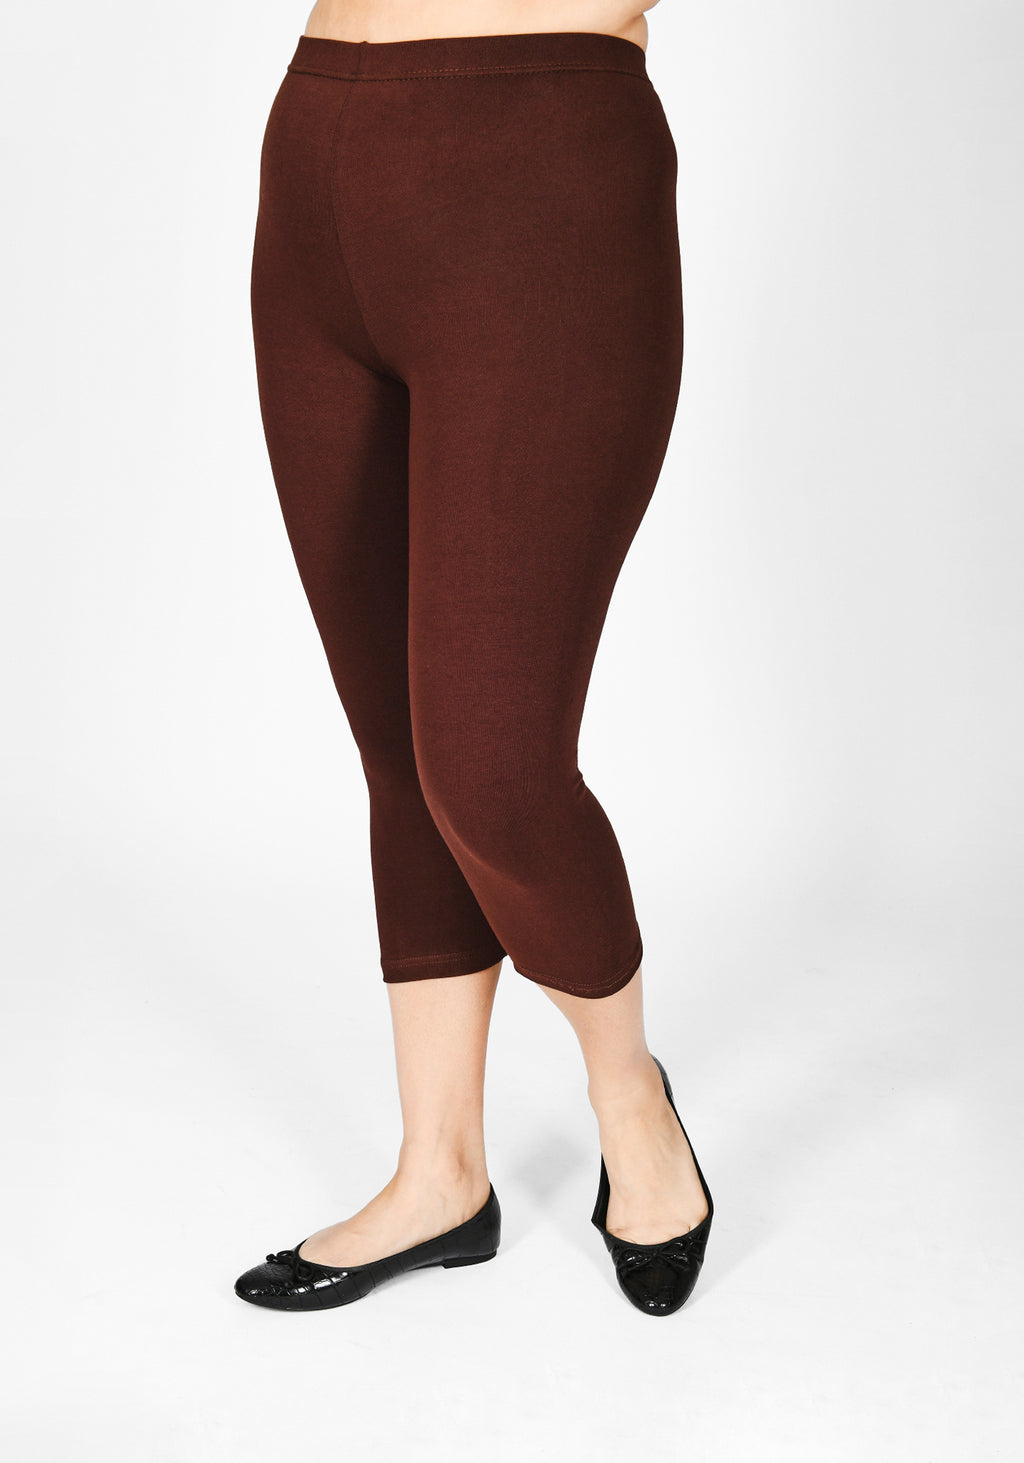 Plus Size Chocolate Brown Cropped Leggings